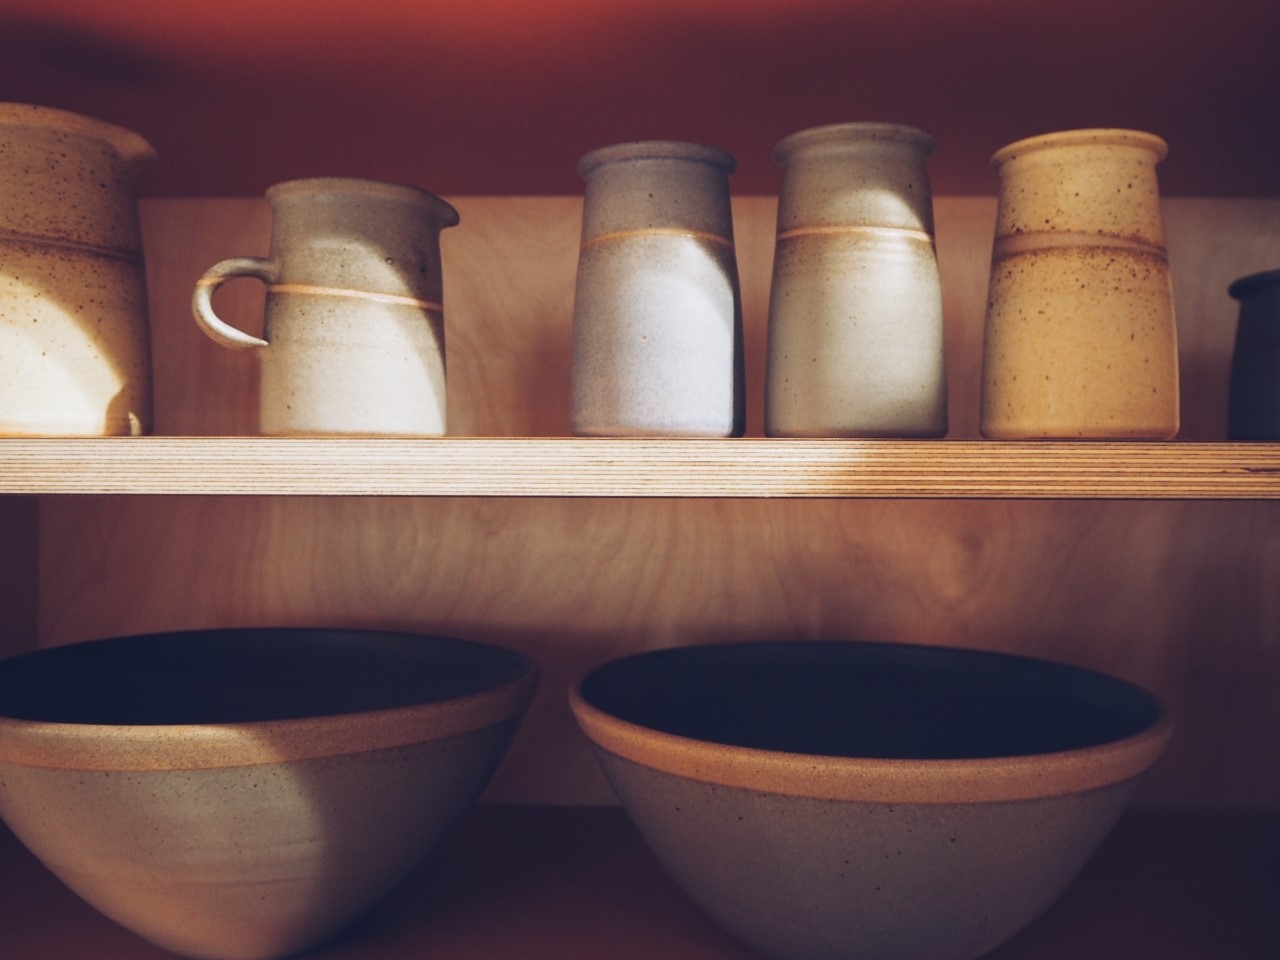 Tony Gant Pottery displayed in Pluck Kitchen cabinet at Clerkenwell Design Week.